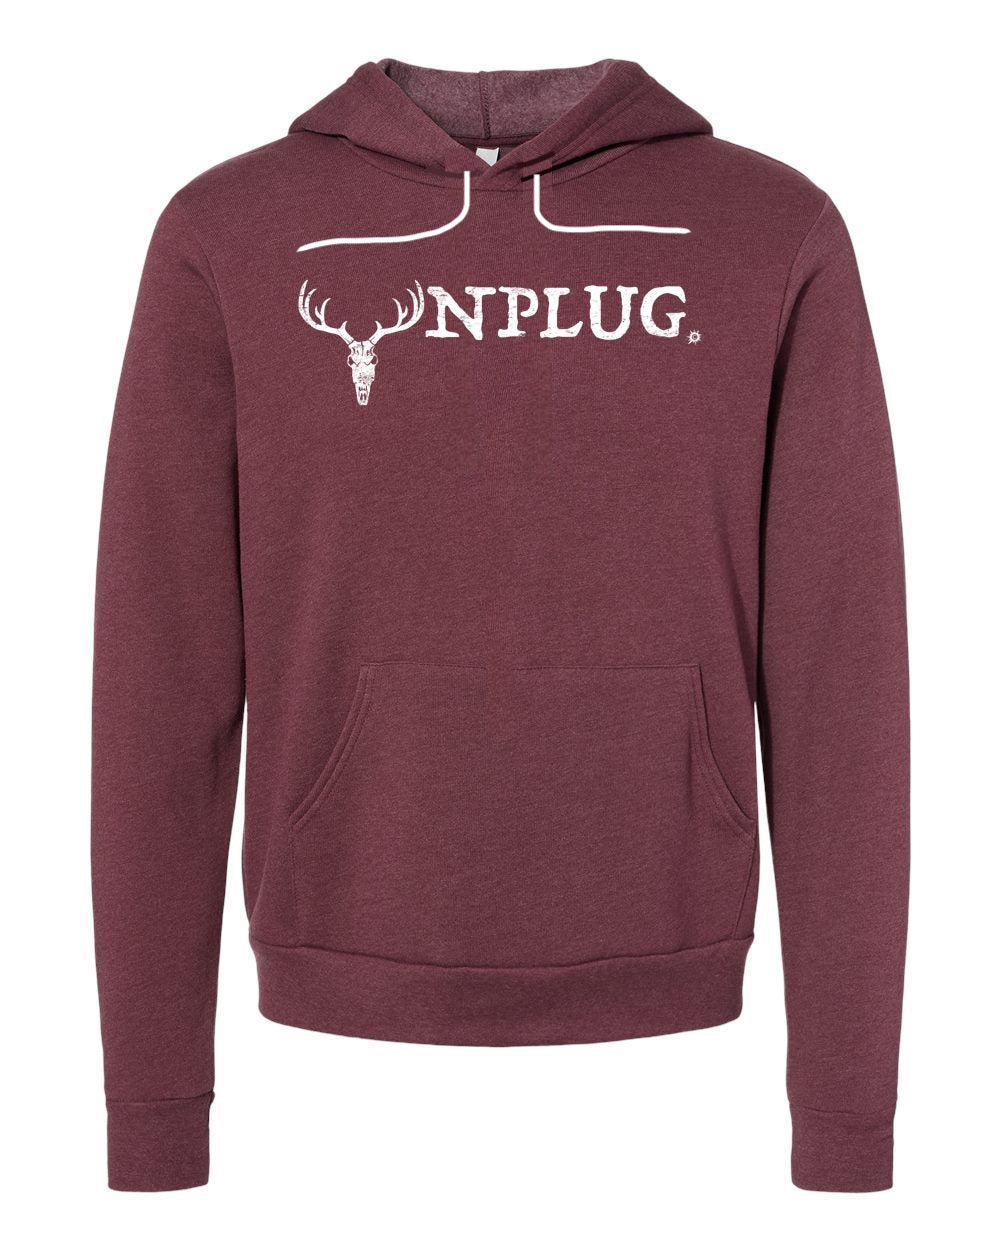 Hunting Premium Super Soft Sweatshirt